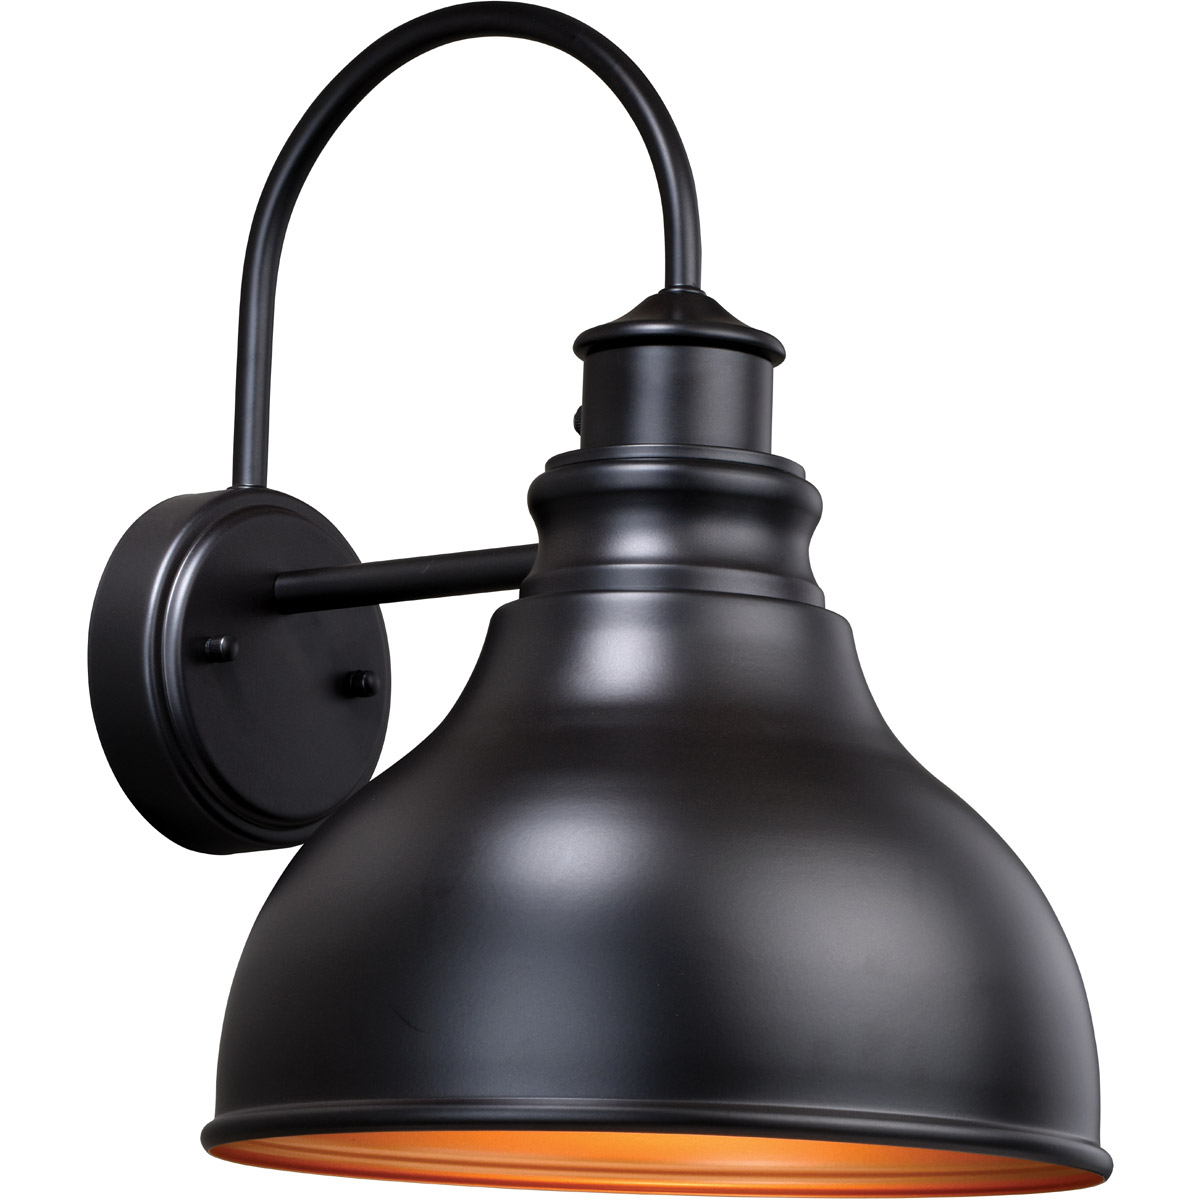 Best And Newest Ranbir Oil Burnished Bronze Outdoor Barn Lights With Dusk To Dawn For Vaxcel T0314 Delano Outdoor Wall Light Oil Burnished (View 5 of 20)